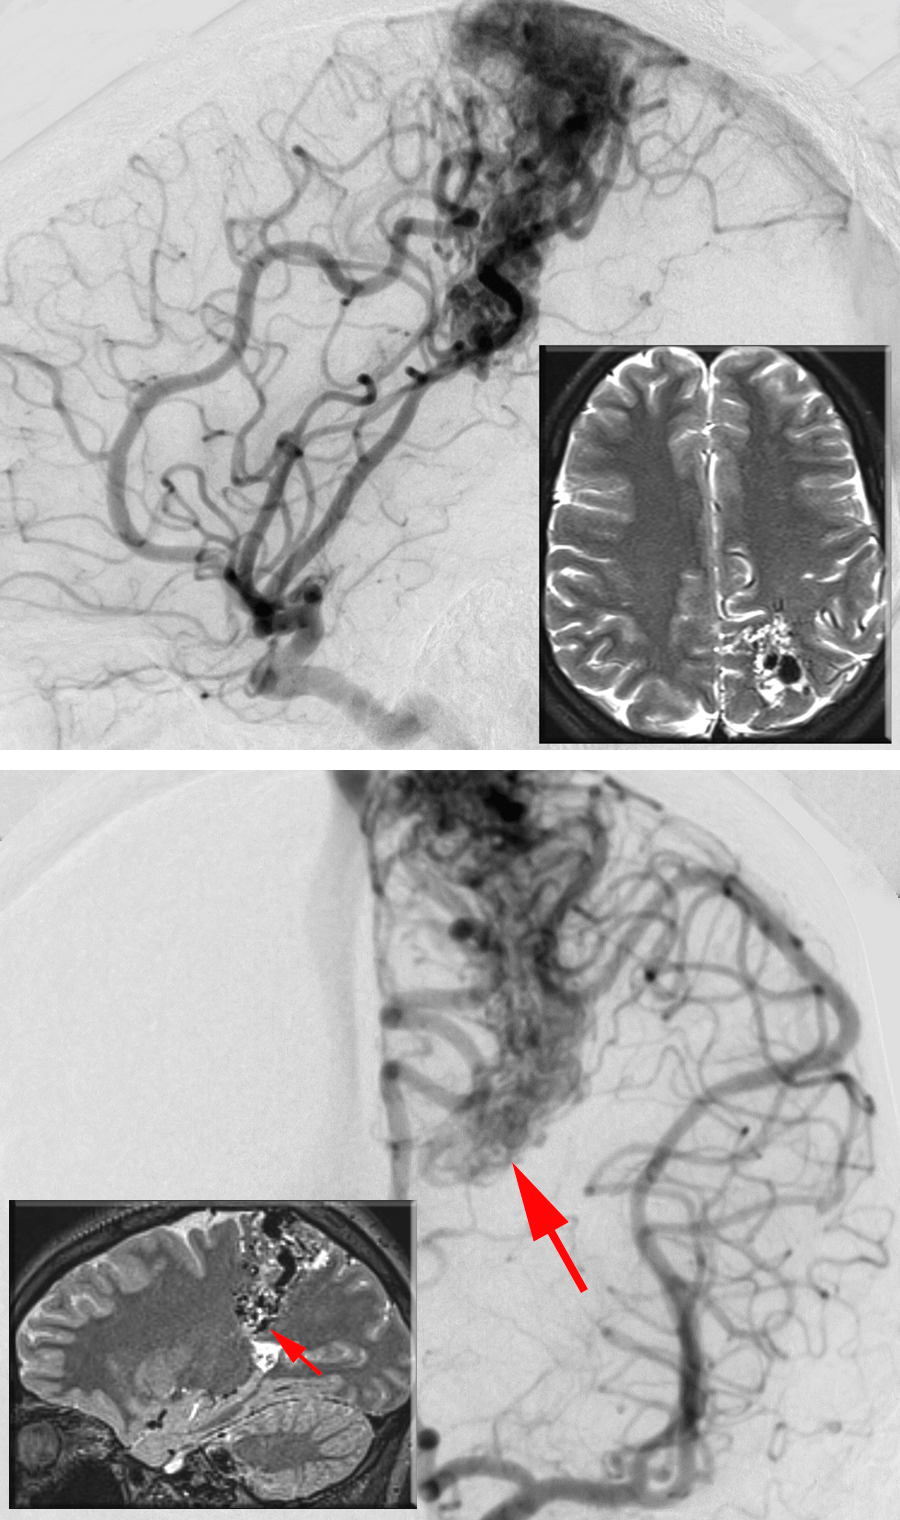 Figure 5: A lateral parietal AVM is shown on lateral (upper image) and anteroposterior (lower image) left-sided ICA angiograms. The inset MRIs illustrate the location of the AVM. The deep ependymal/choroidal feeding vessels near the ventricle (arrows) can be a challenging source of intraoperative bleeding.